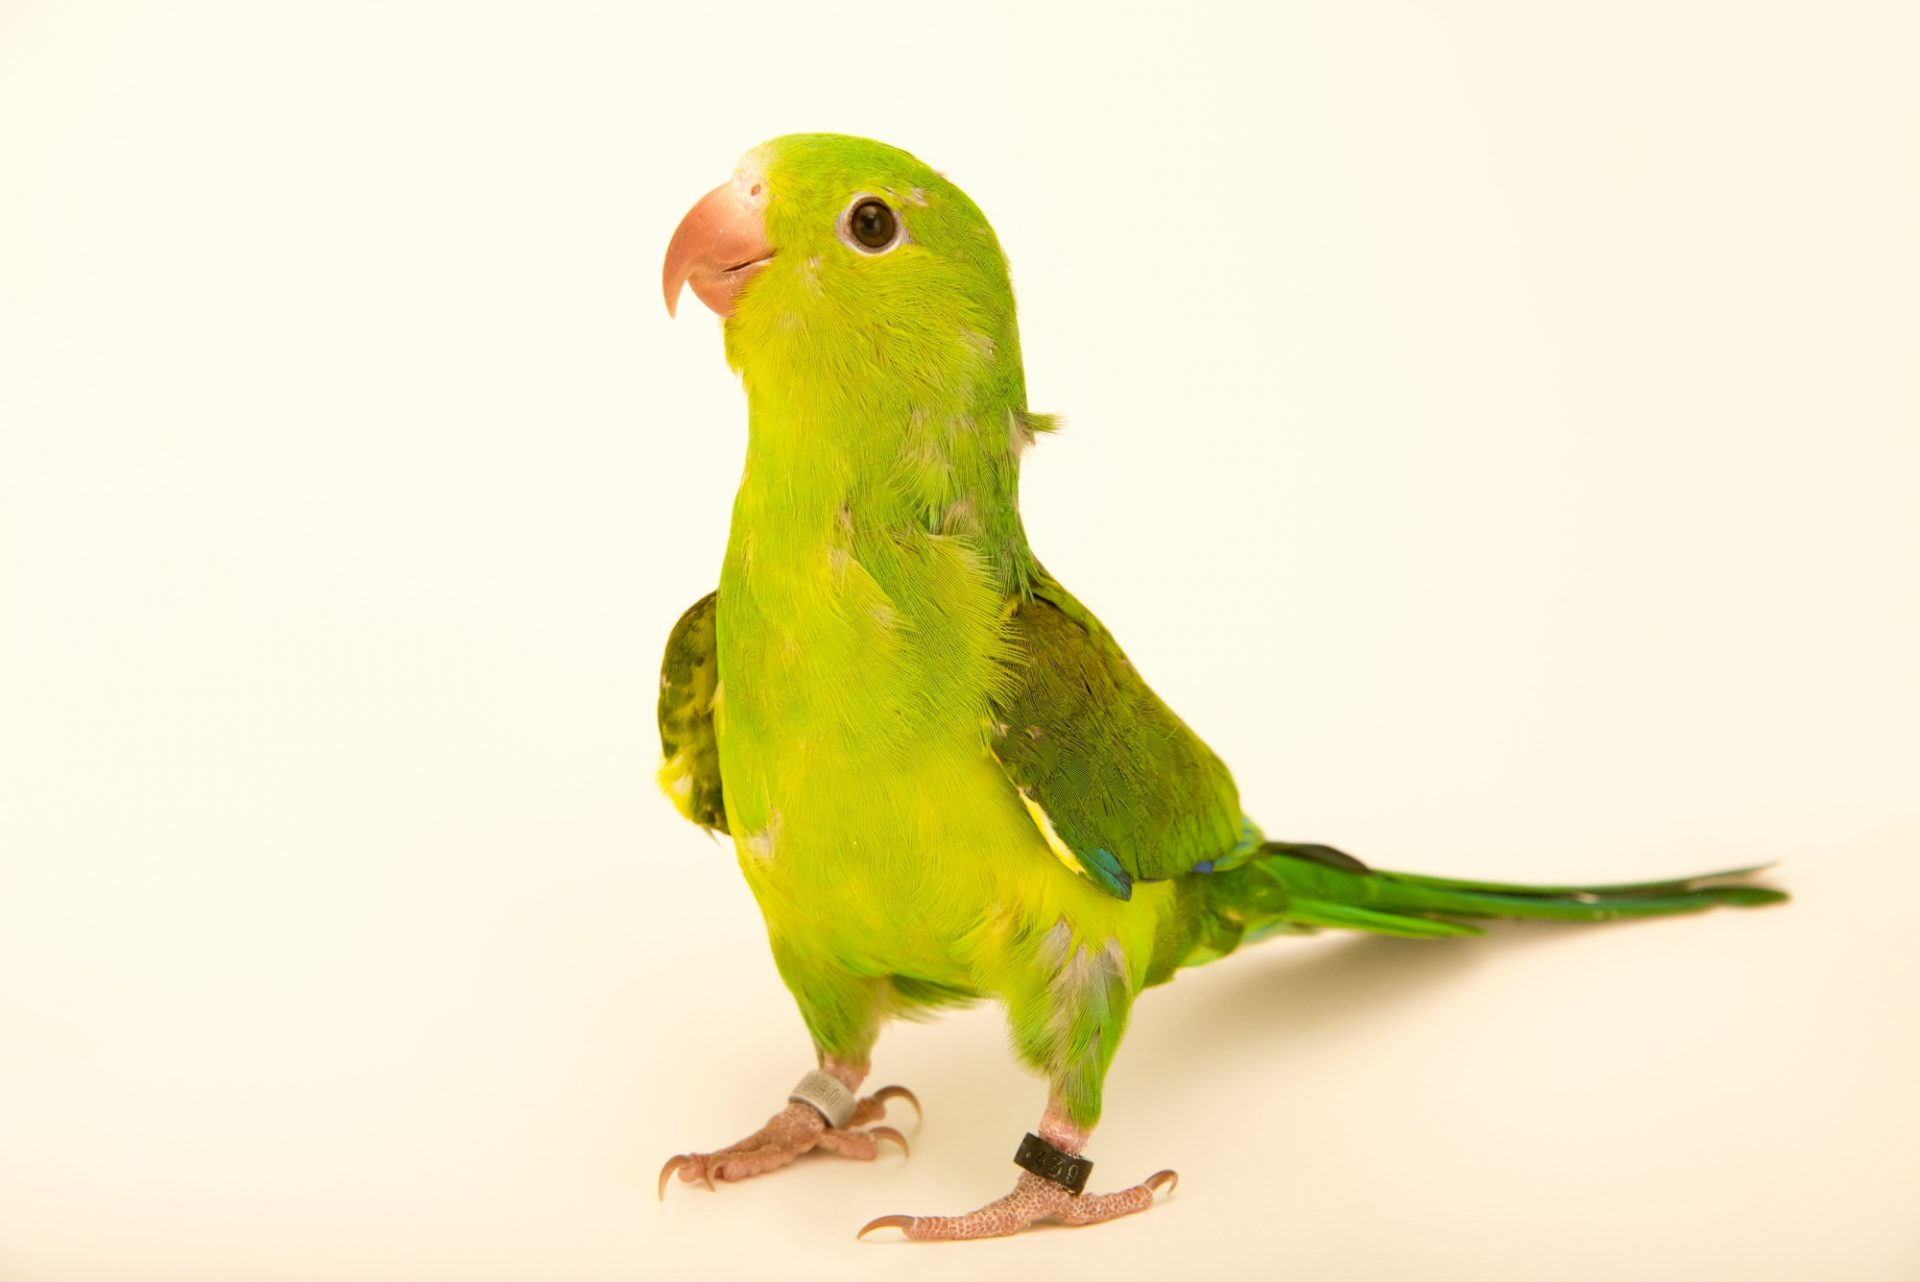 Photo: Plain parakeet, Brotogeris tirica, at Loro Parque Fundacion.